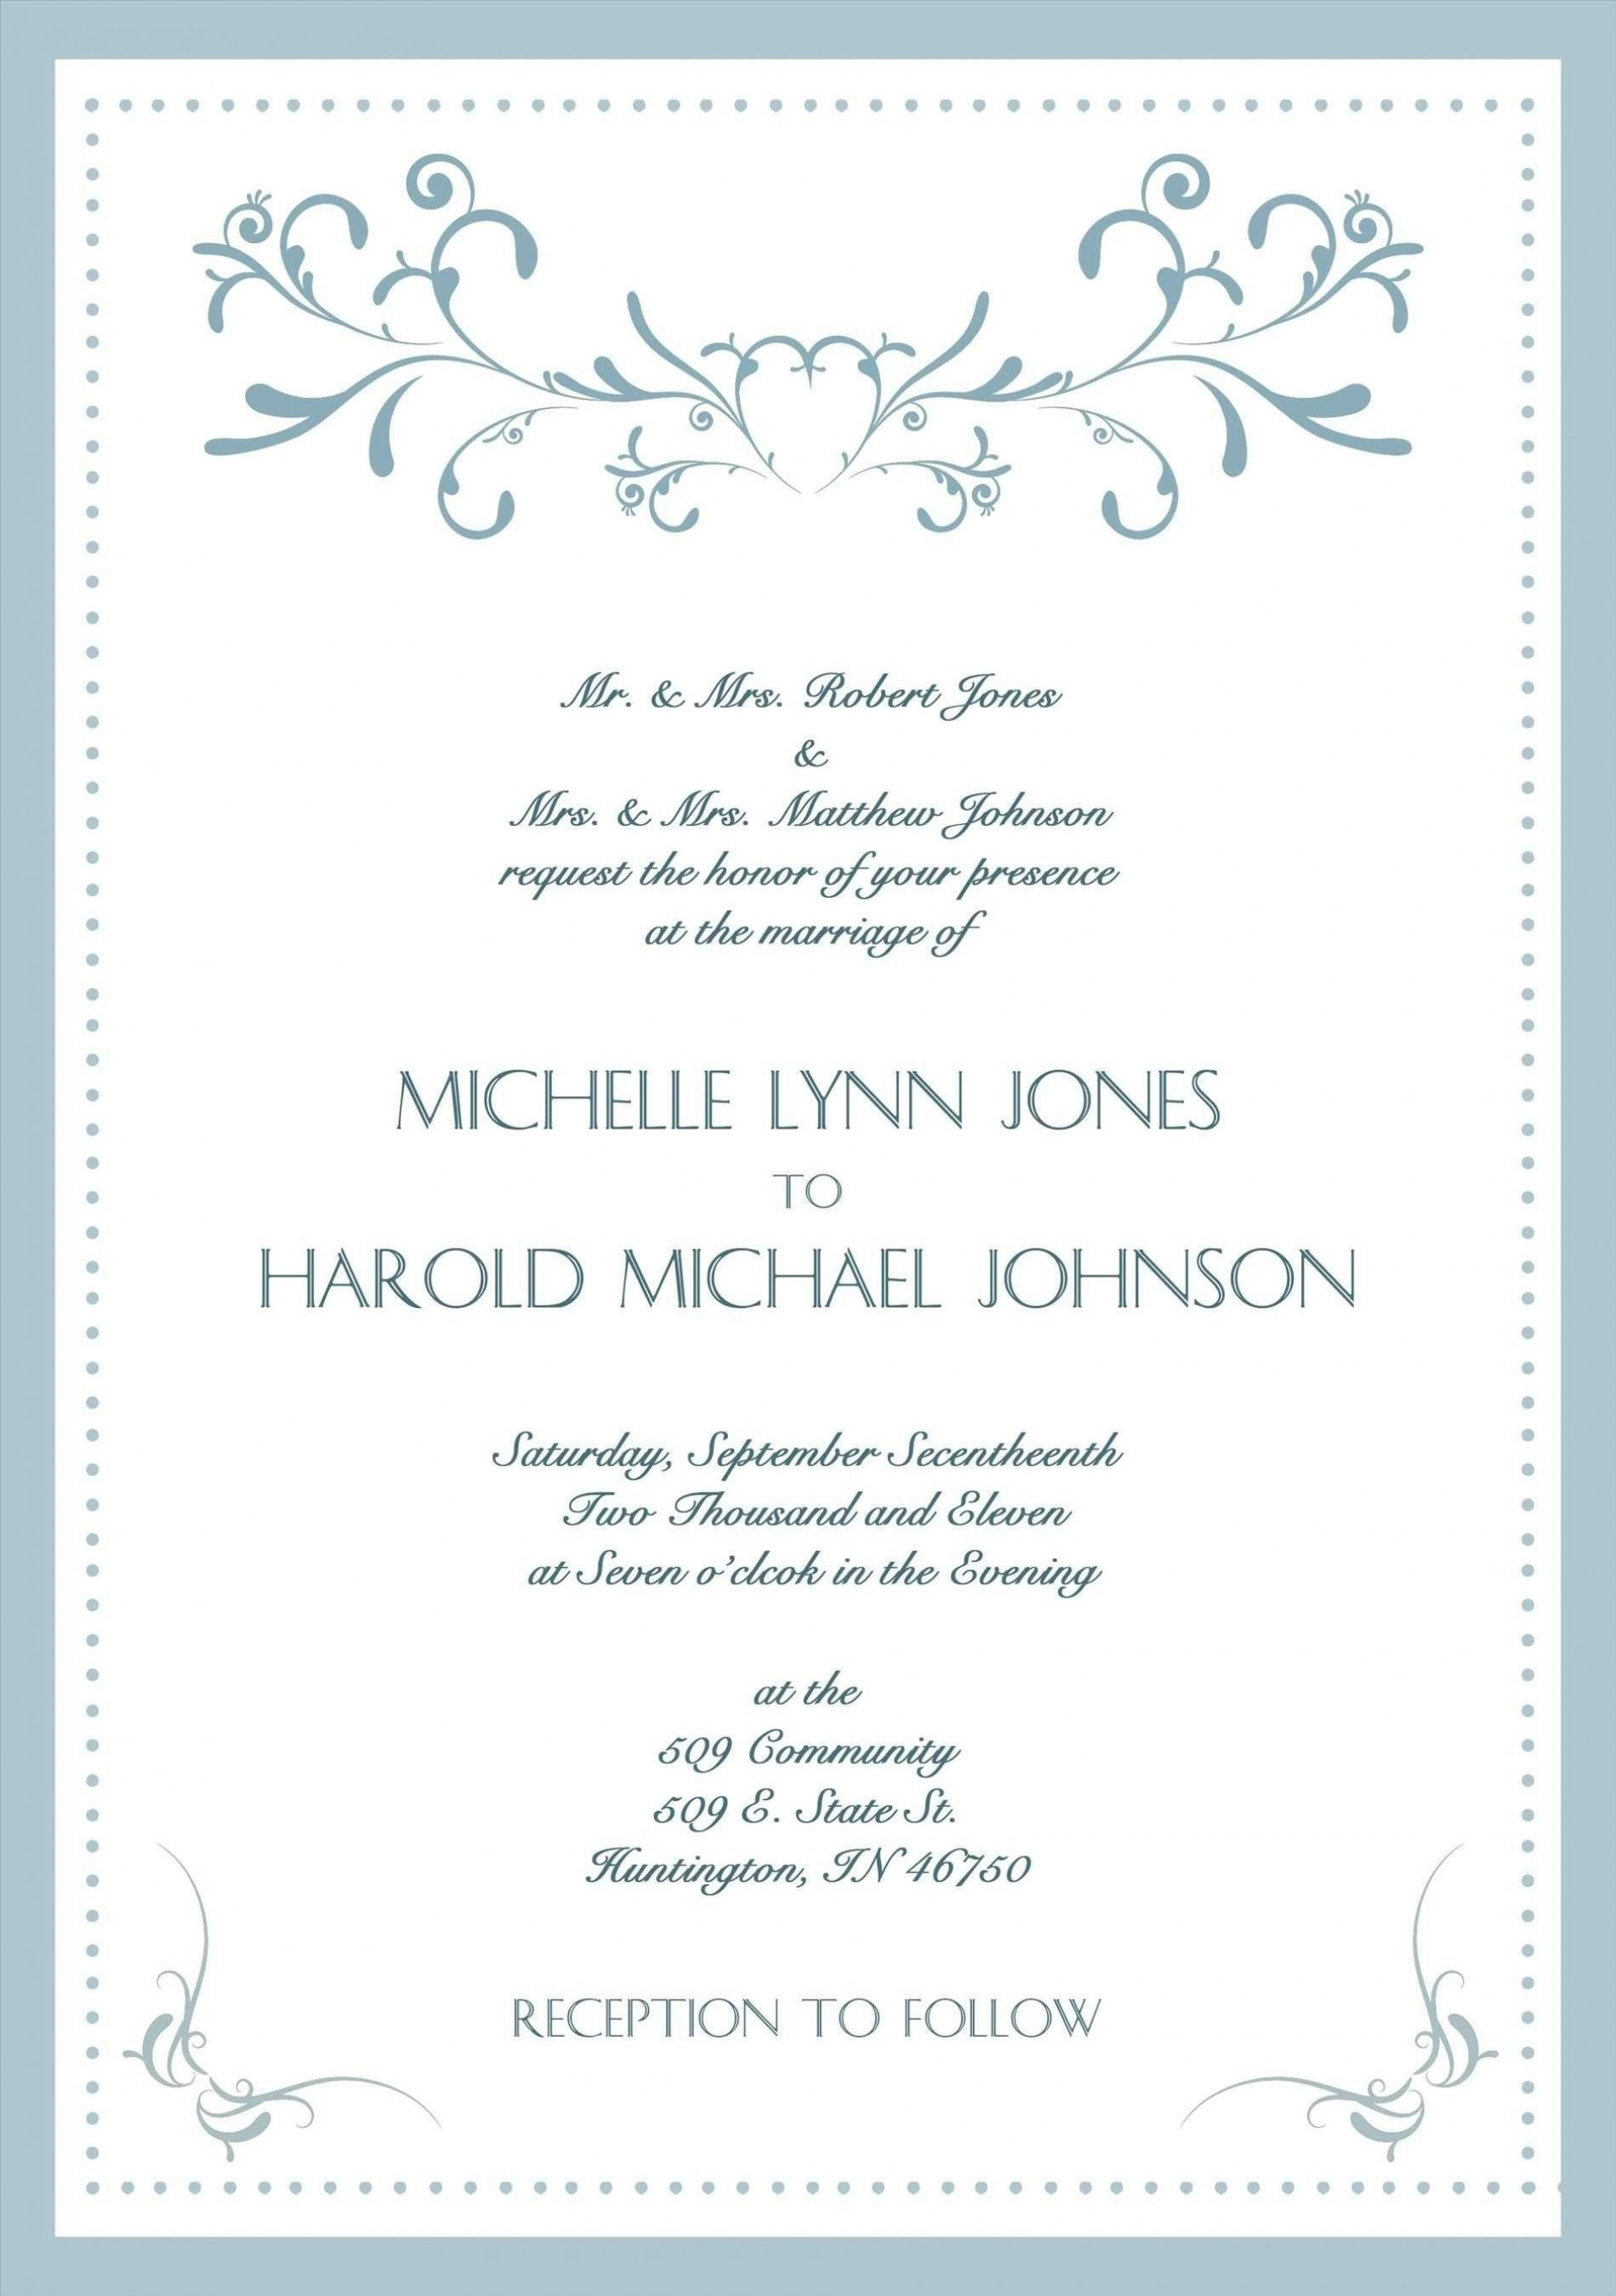 002 Stunning Formal Wedding Invitation Template High Resolution  Templates Email Format Wording Free1920